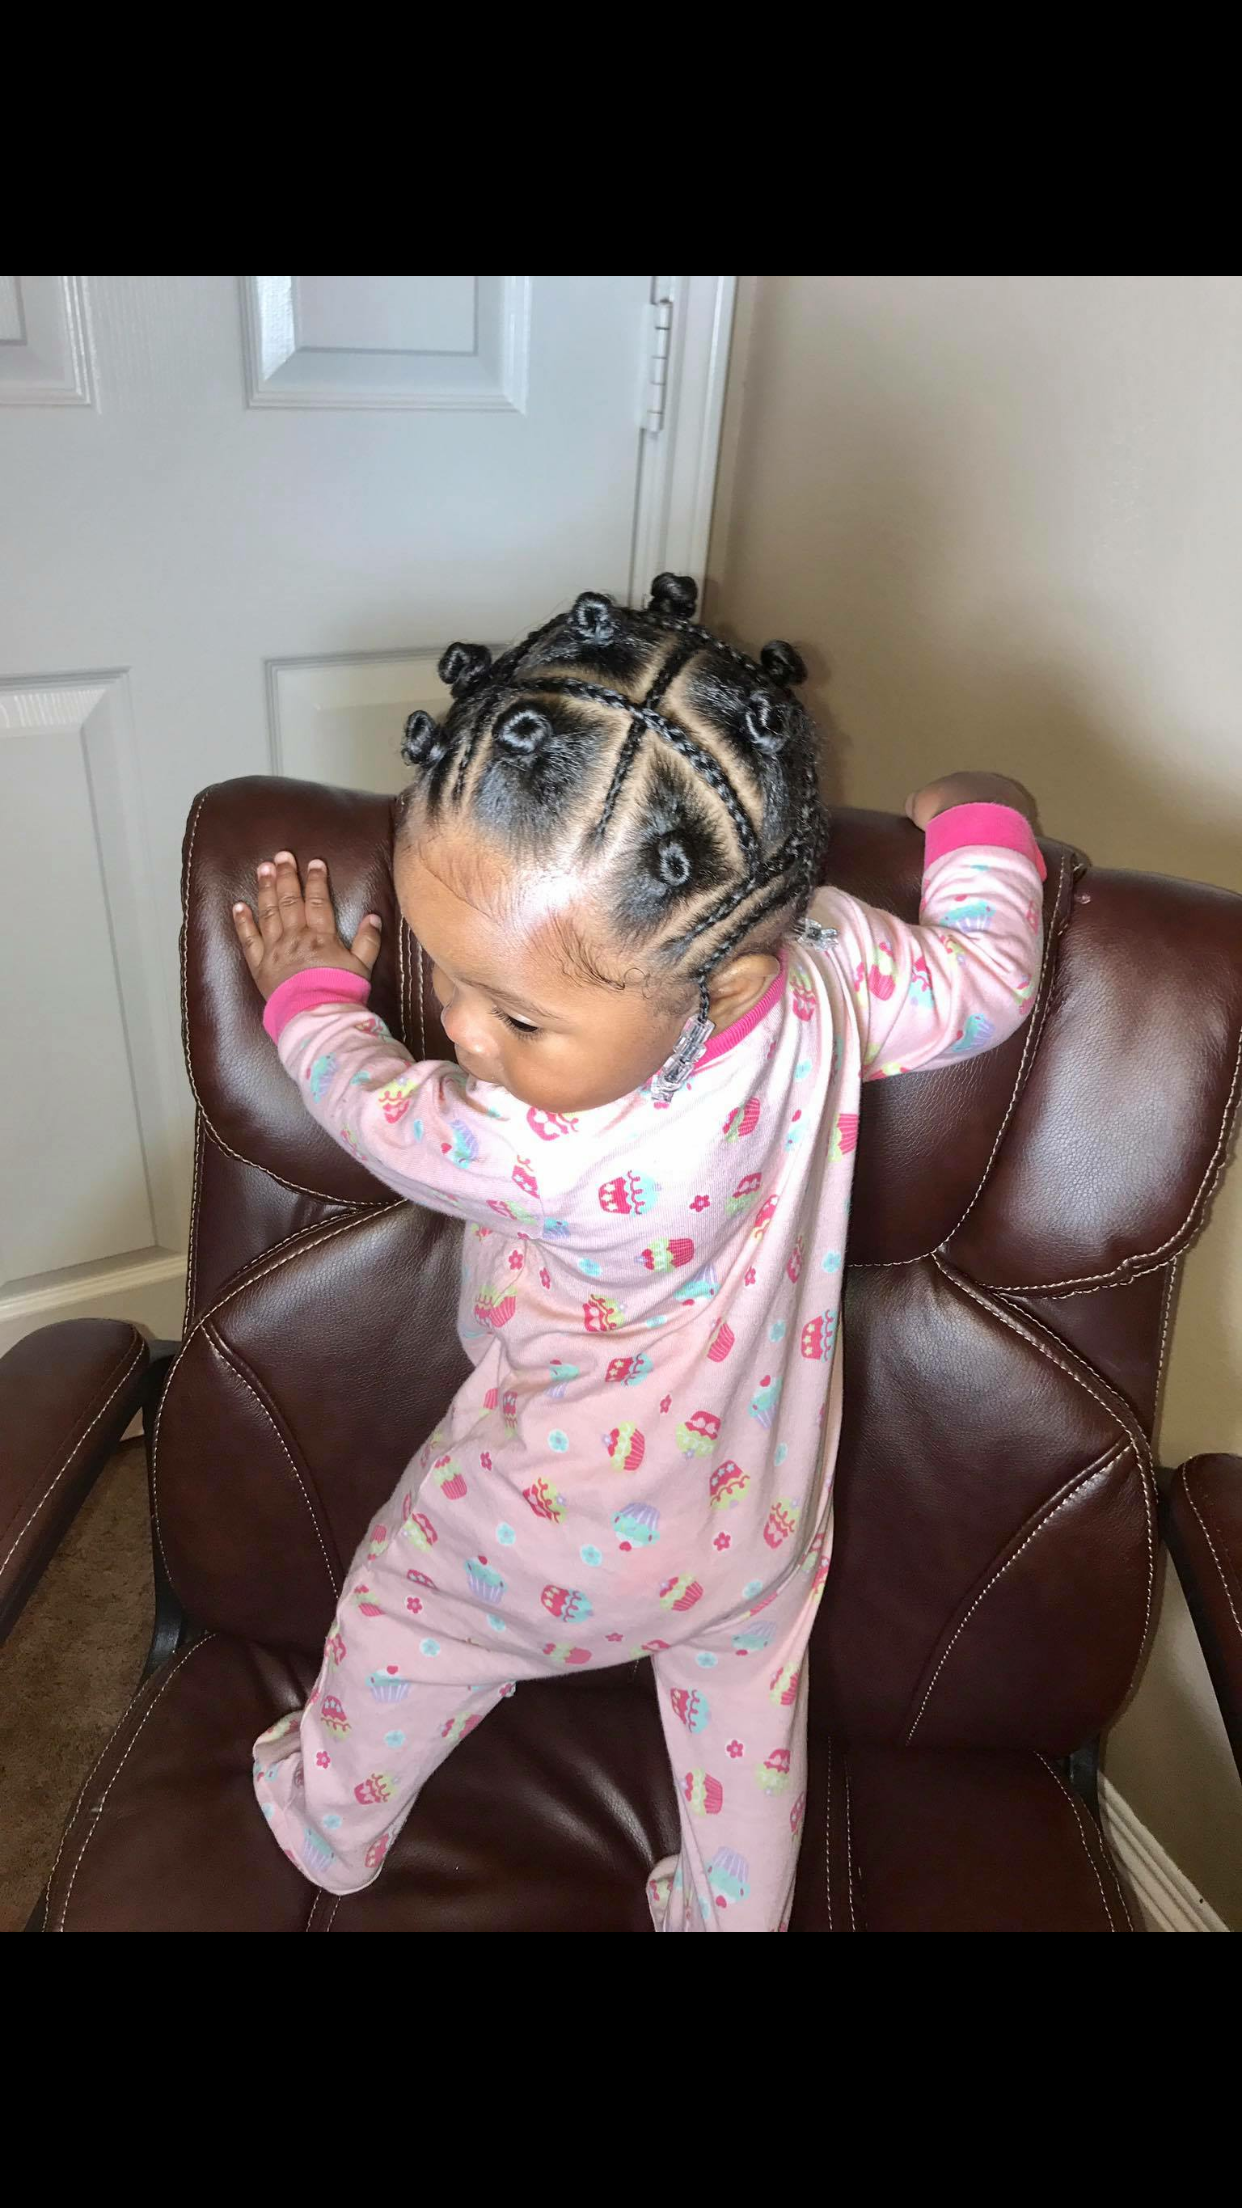 4 year baby boy hairstyle pin by tunisia orji on jadore hairstyles  pinterest  hair styles